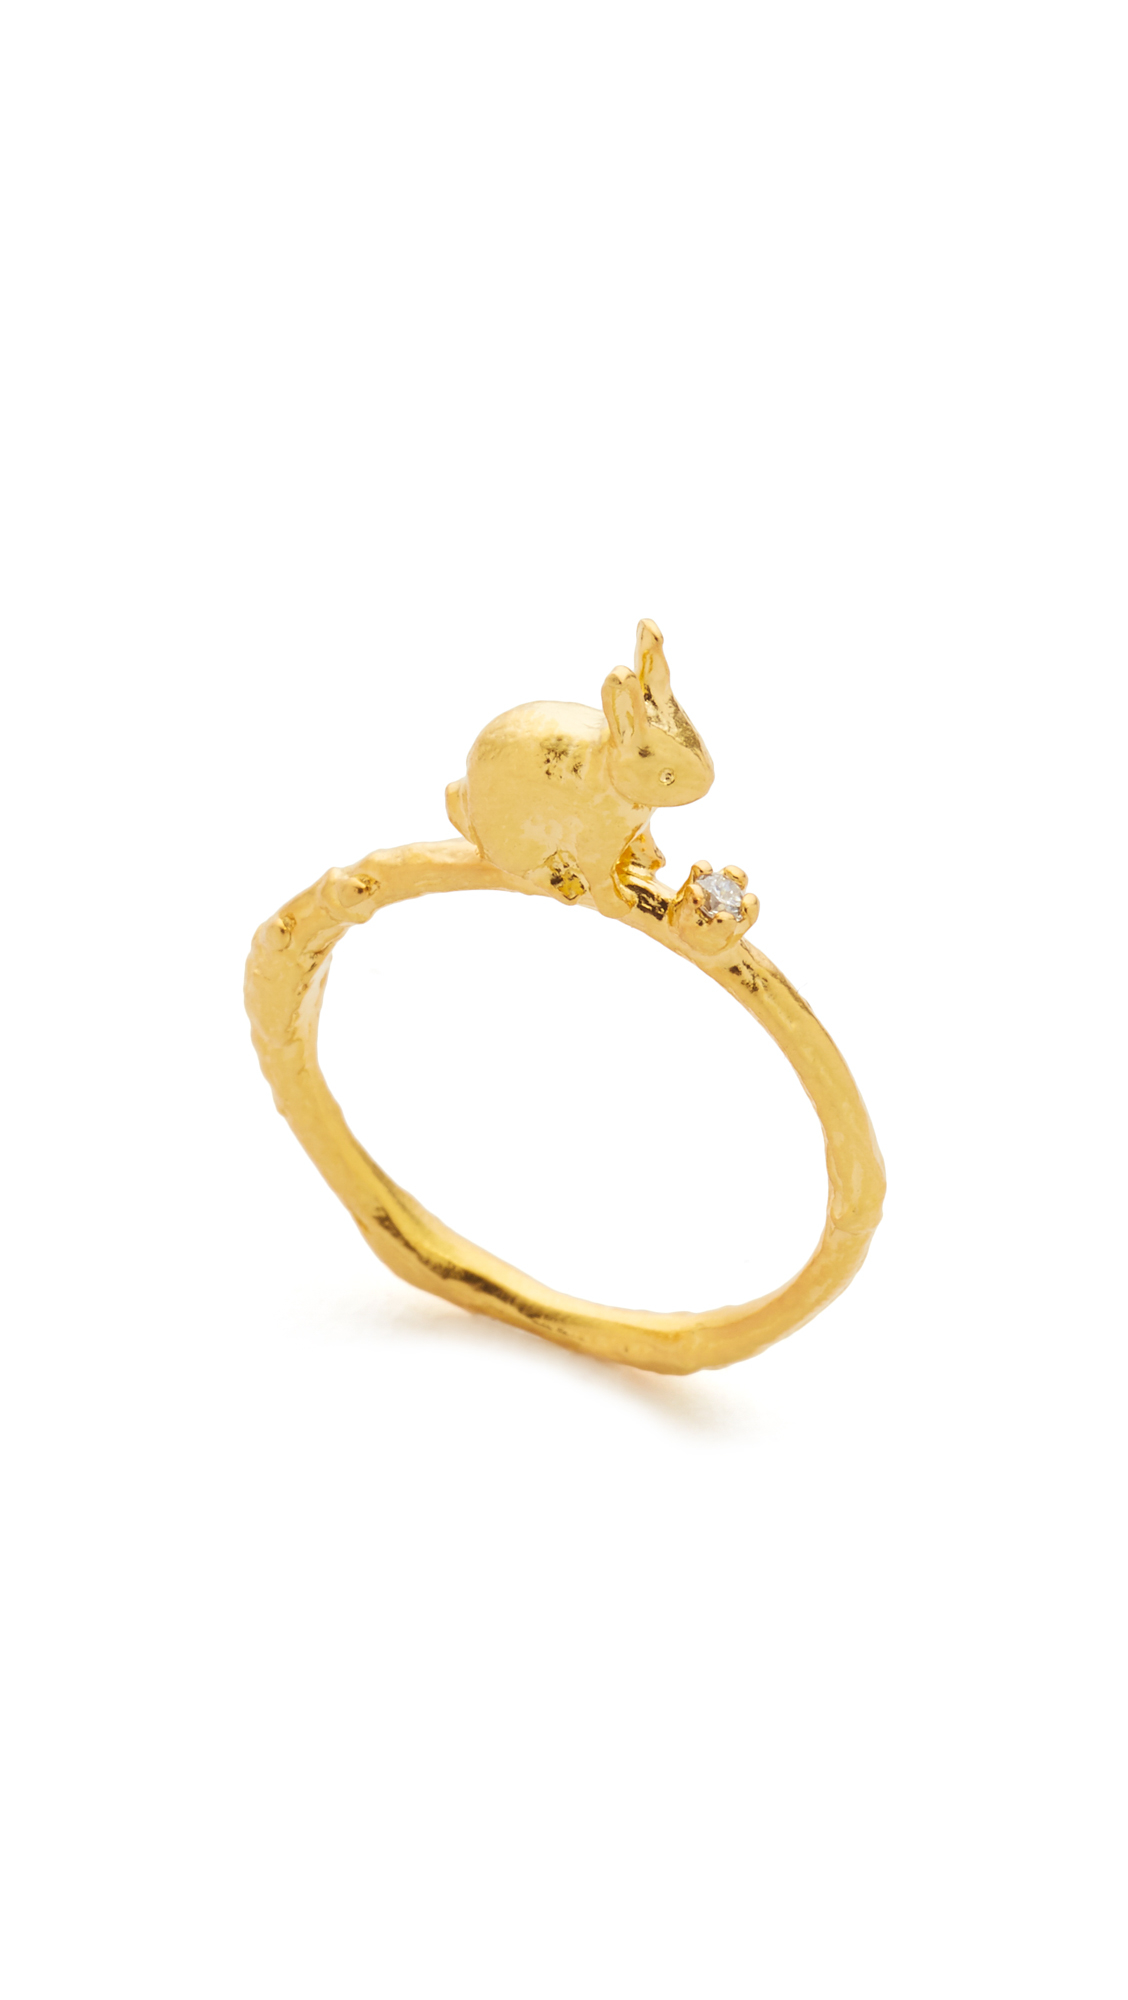 Lyst Alex Monroe Sitting Bunny Ring With Set Diamond in Metallic